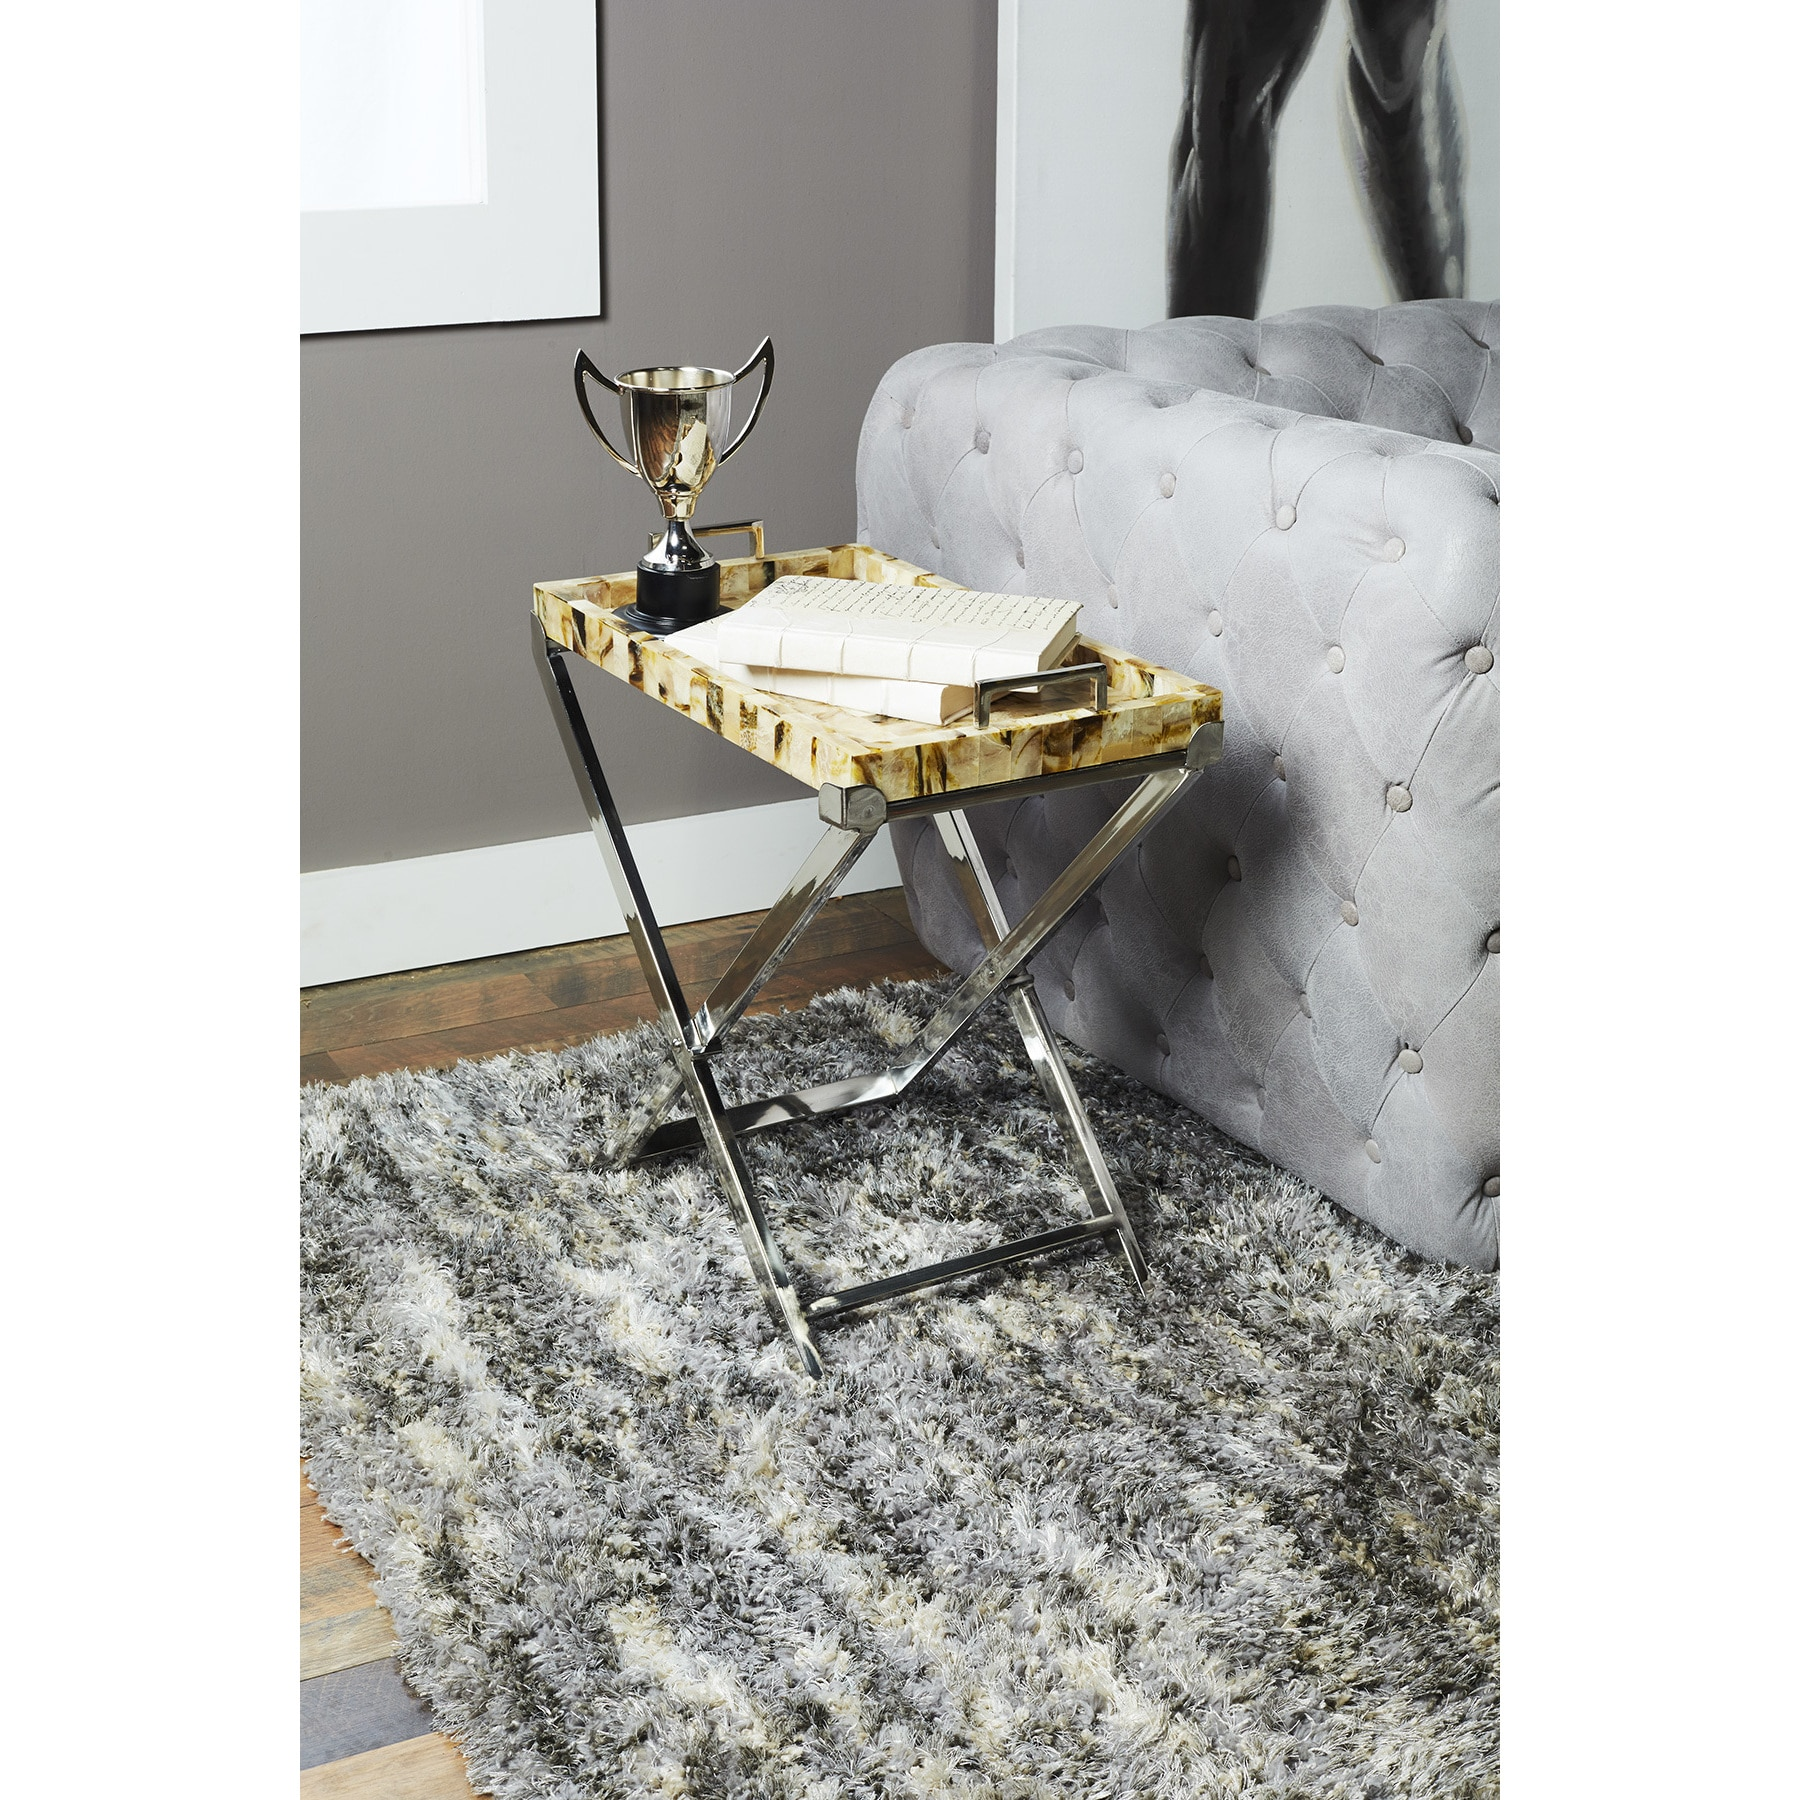 Puzzle Side Table (Hip Vintage Crosby Tray Table), Silver